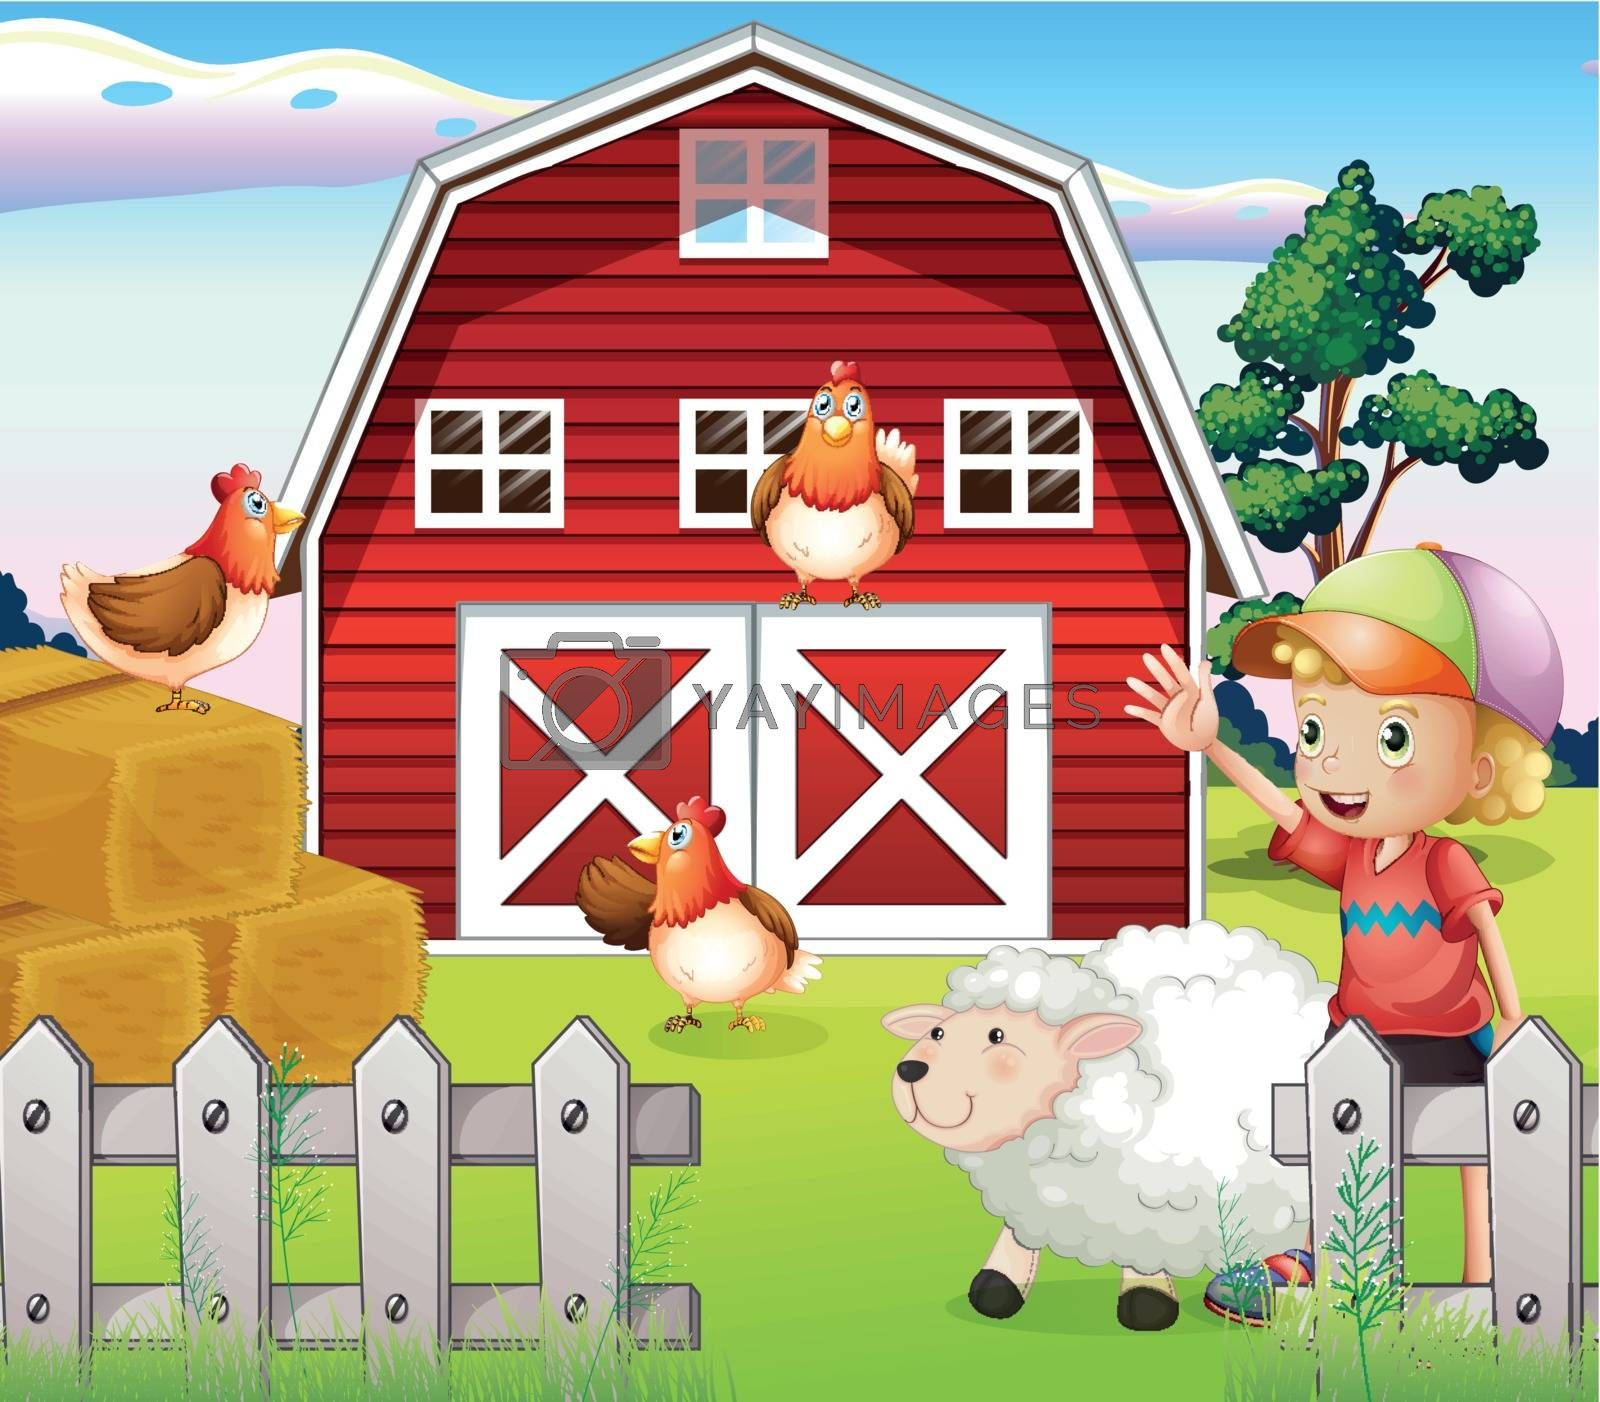 Illustration of a boy at the farmhouse with animals